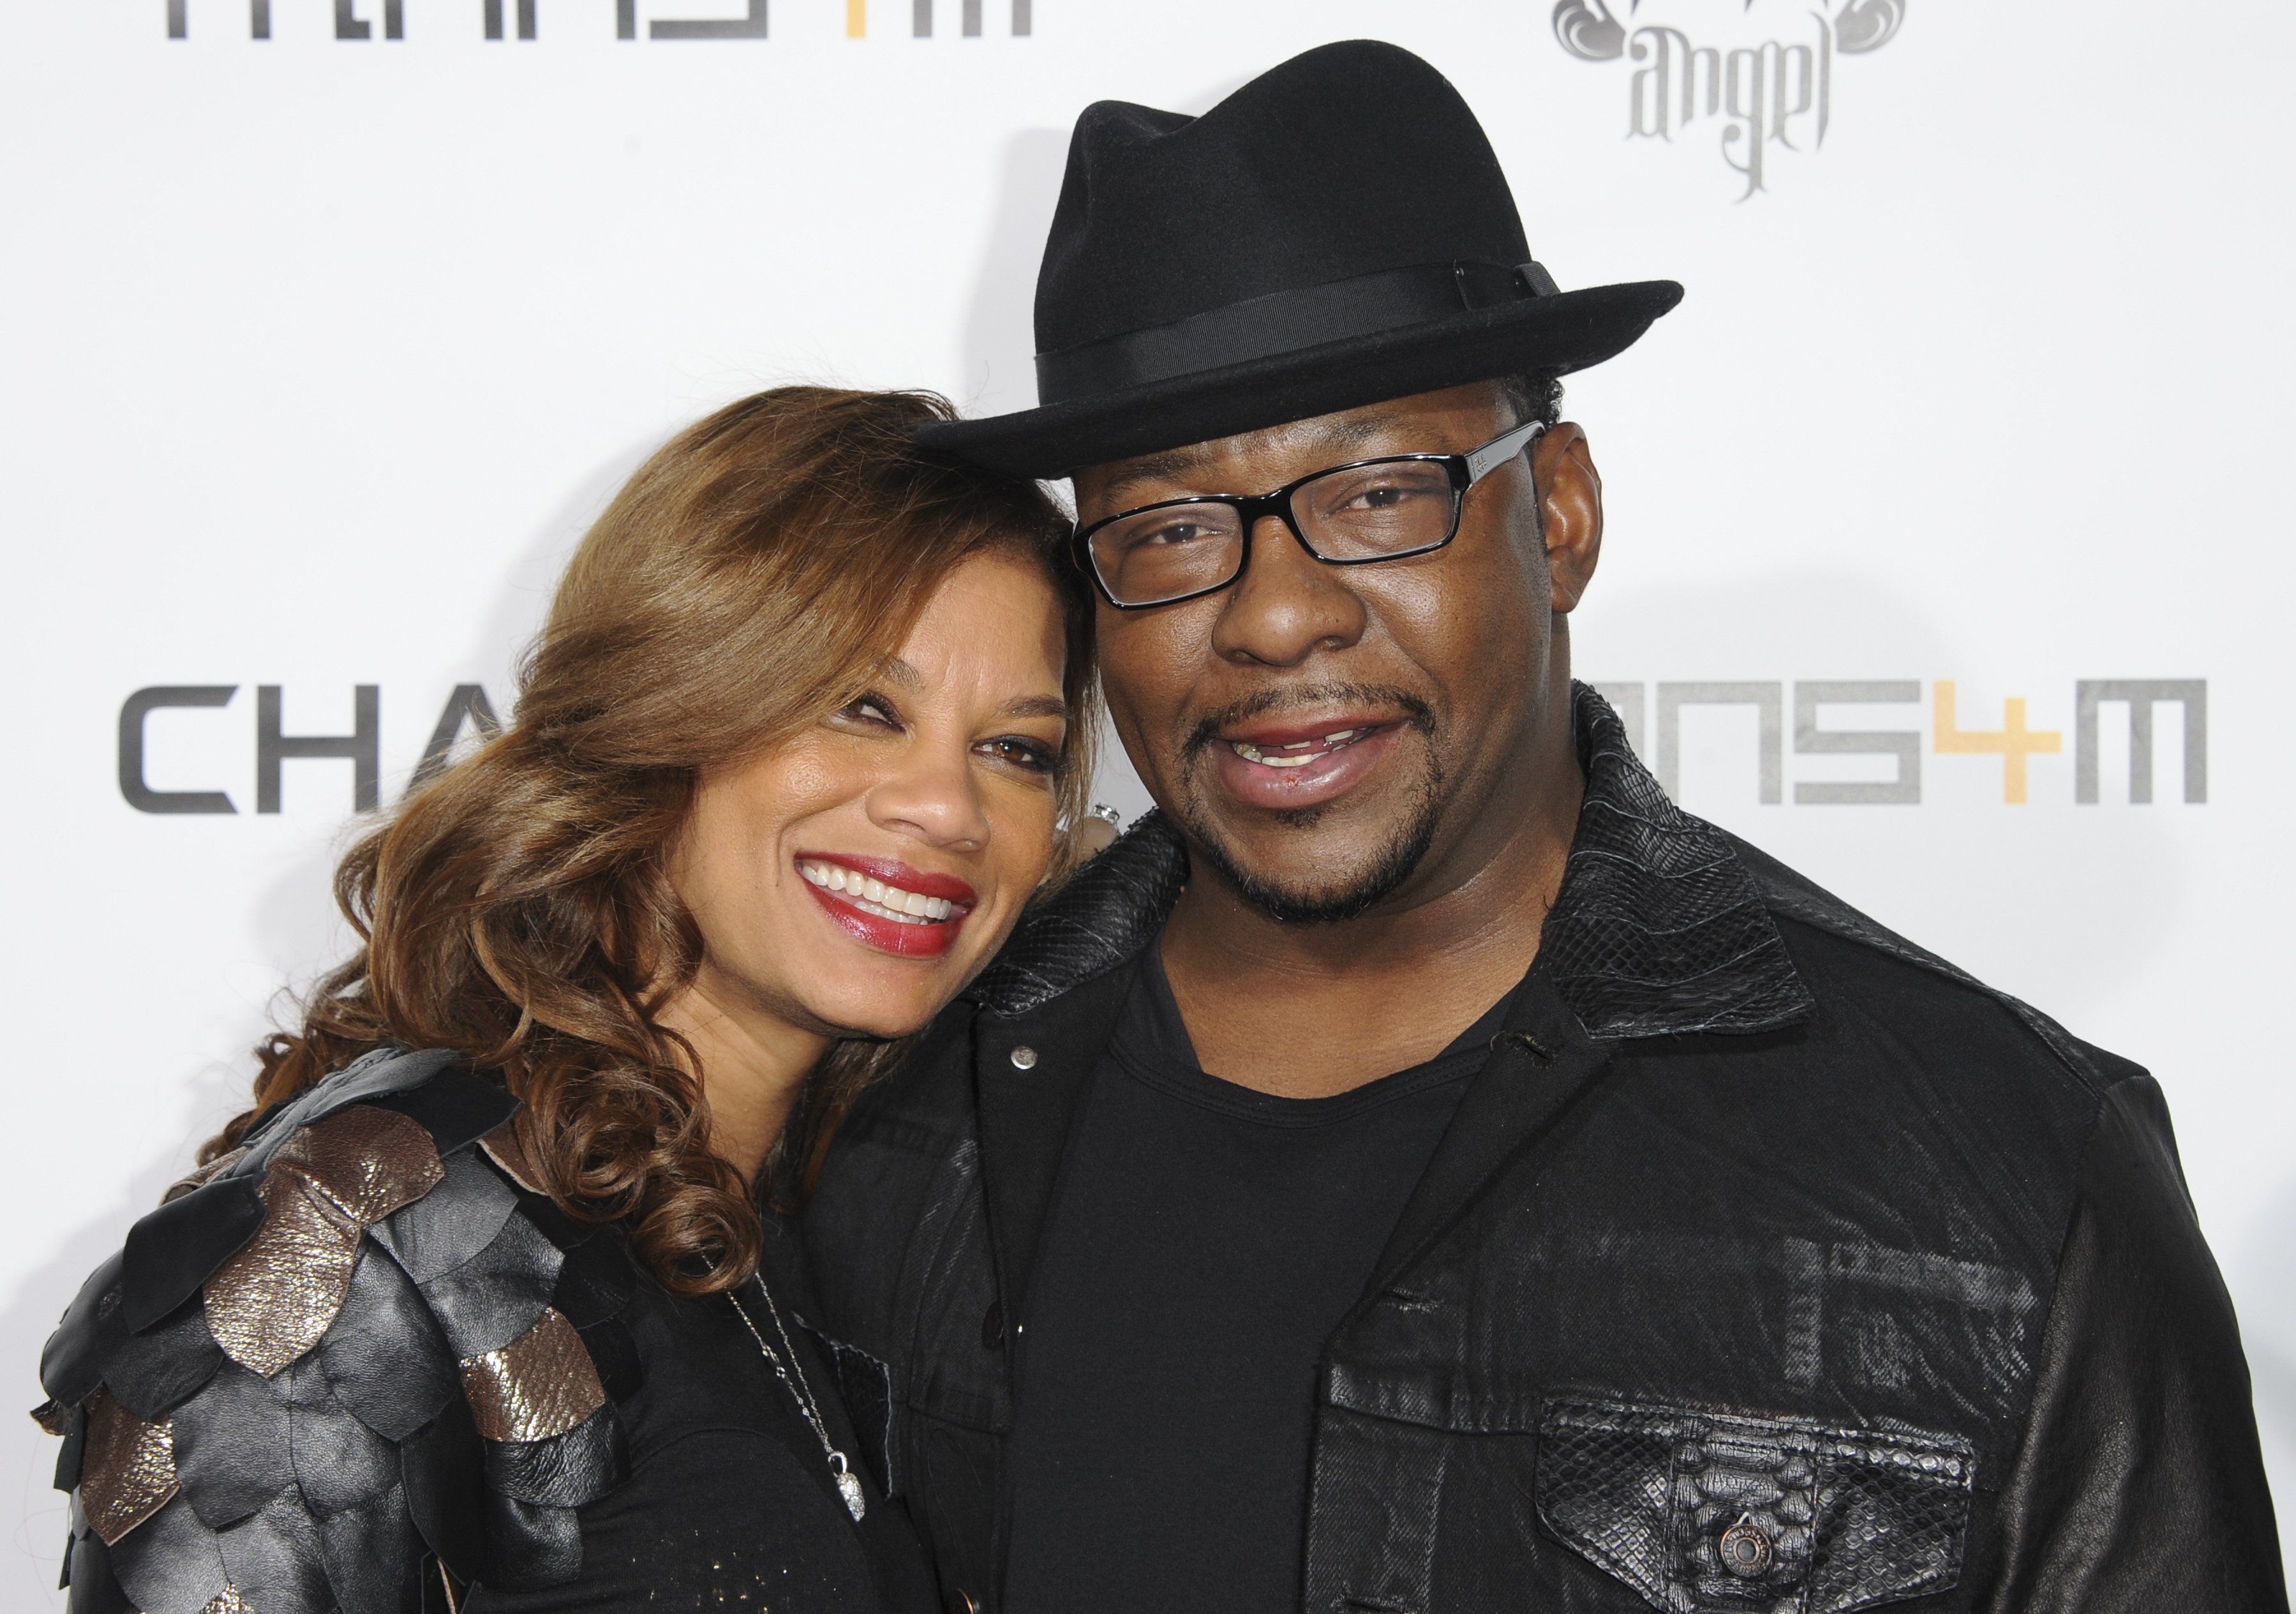 Alicia Etheredge & Bobby Brown at Will.I.Am's Annual TRANS4M Concert on Feb. 7, 2013 in Hollywood | Photo: Getty Images